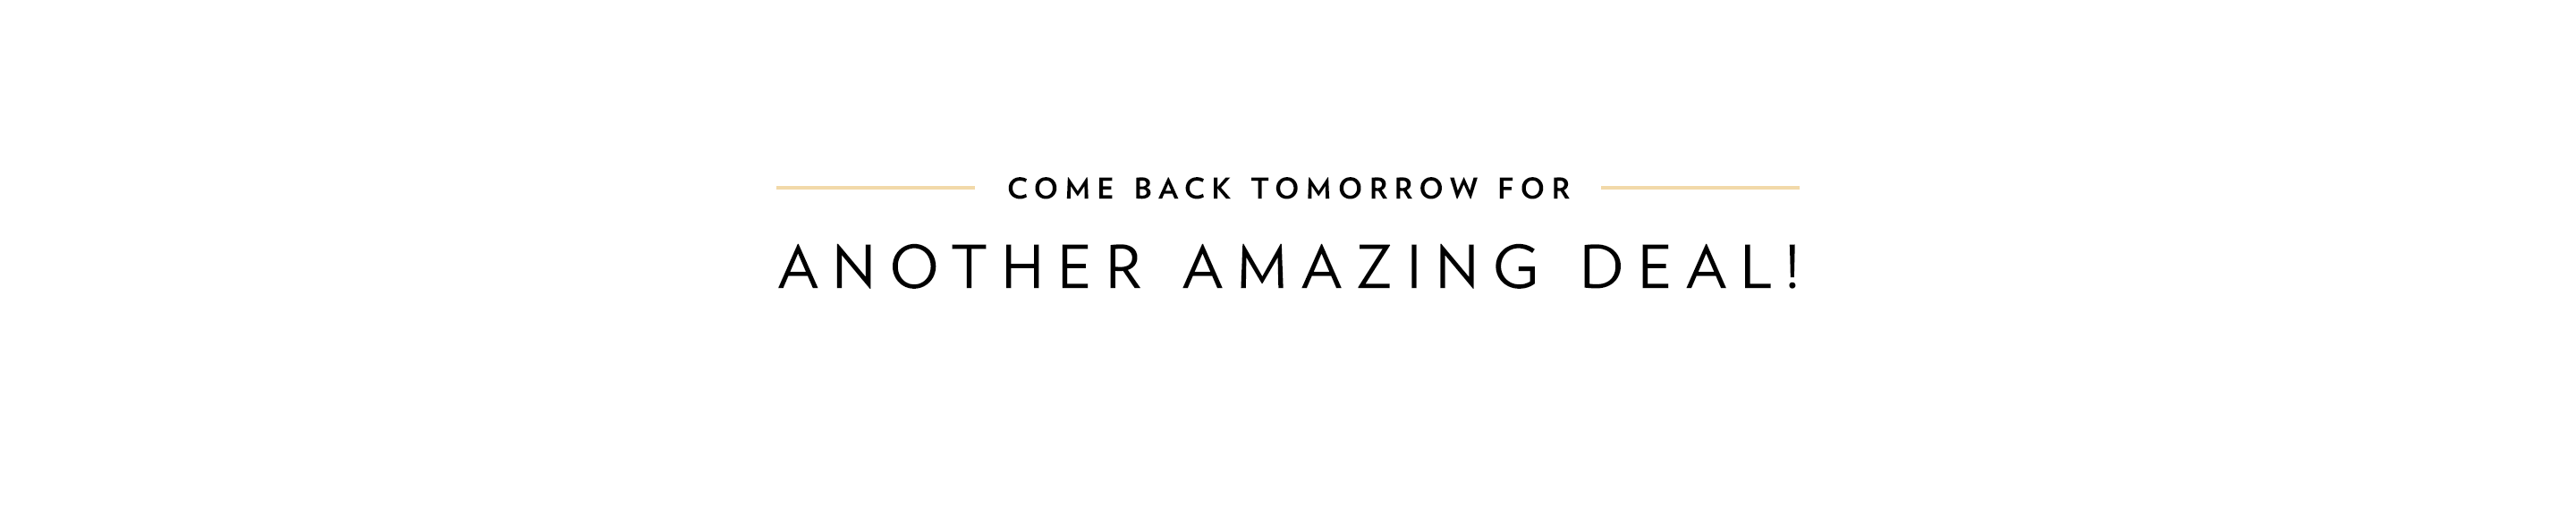 Come Back Tomorrow For Another Amazing Deal